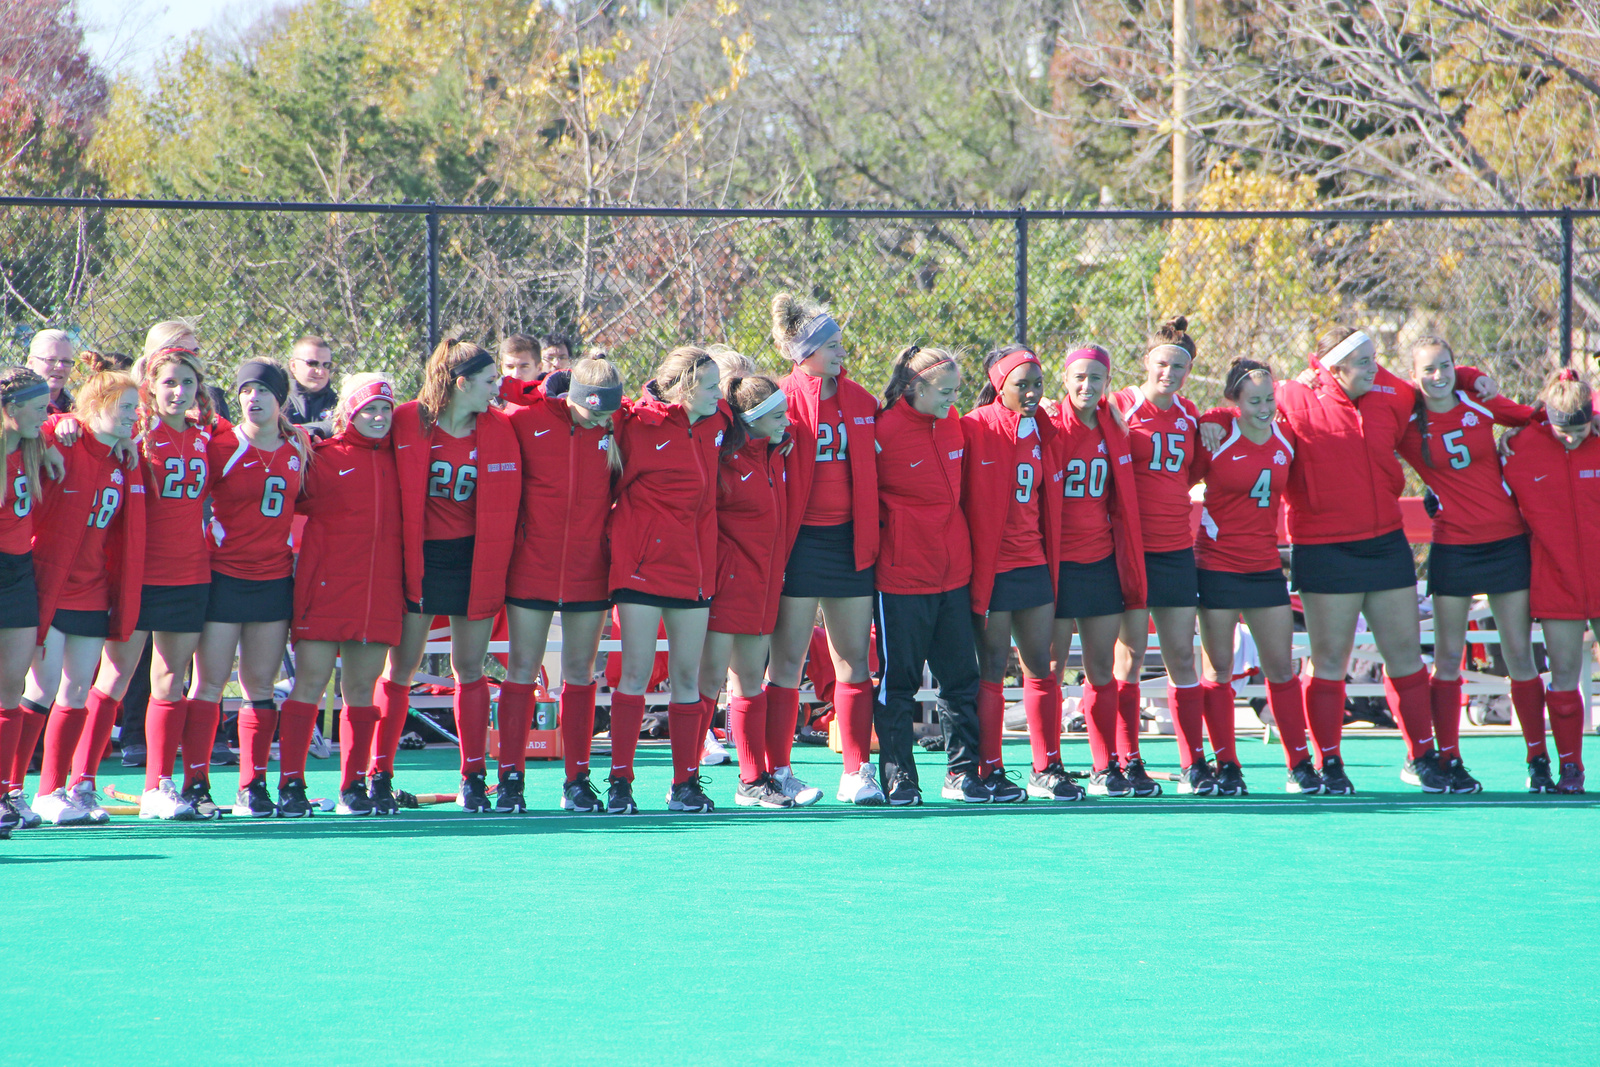 Members of the Ohio State field hockey team sing 'Carmen Ohio' after a 2-1 loss to Michigan on Nov. 2 at Buckeye Varsity Field. Credit: Grant Miller / Copy chief